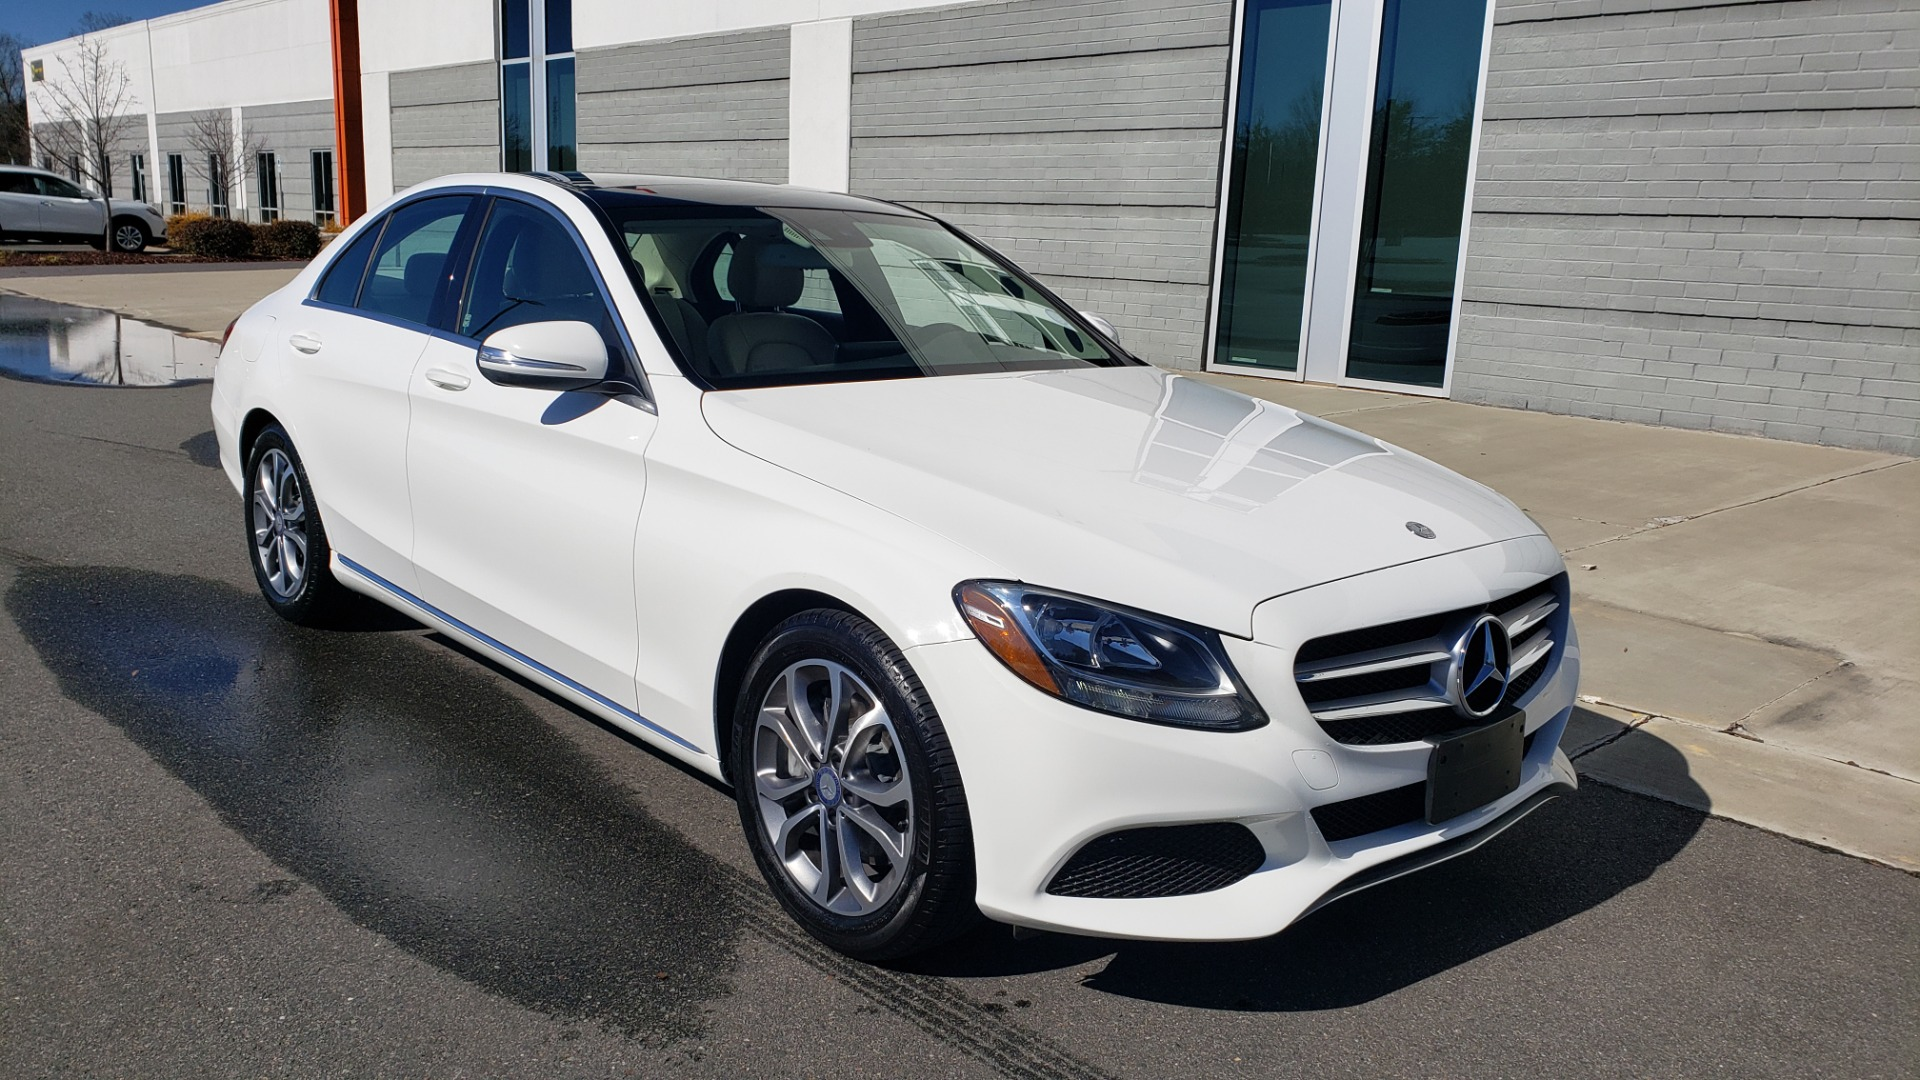 Used 2017 Mercedes-Benz C-CLASS C300 / 2.0L / 7-SPD AUTO / BSA / PANO-ROOF / REARVIEW for sale $23,695 at Formula Imports in Charlotte NC 28227 4